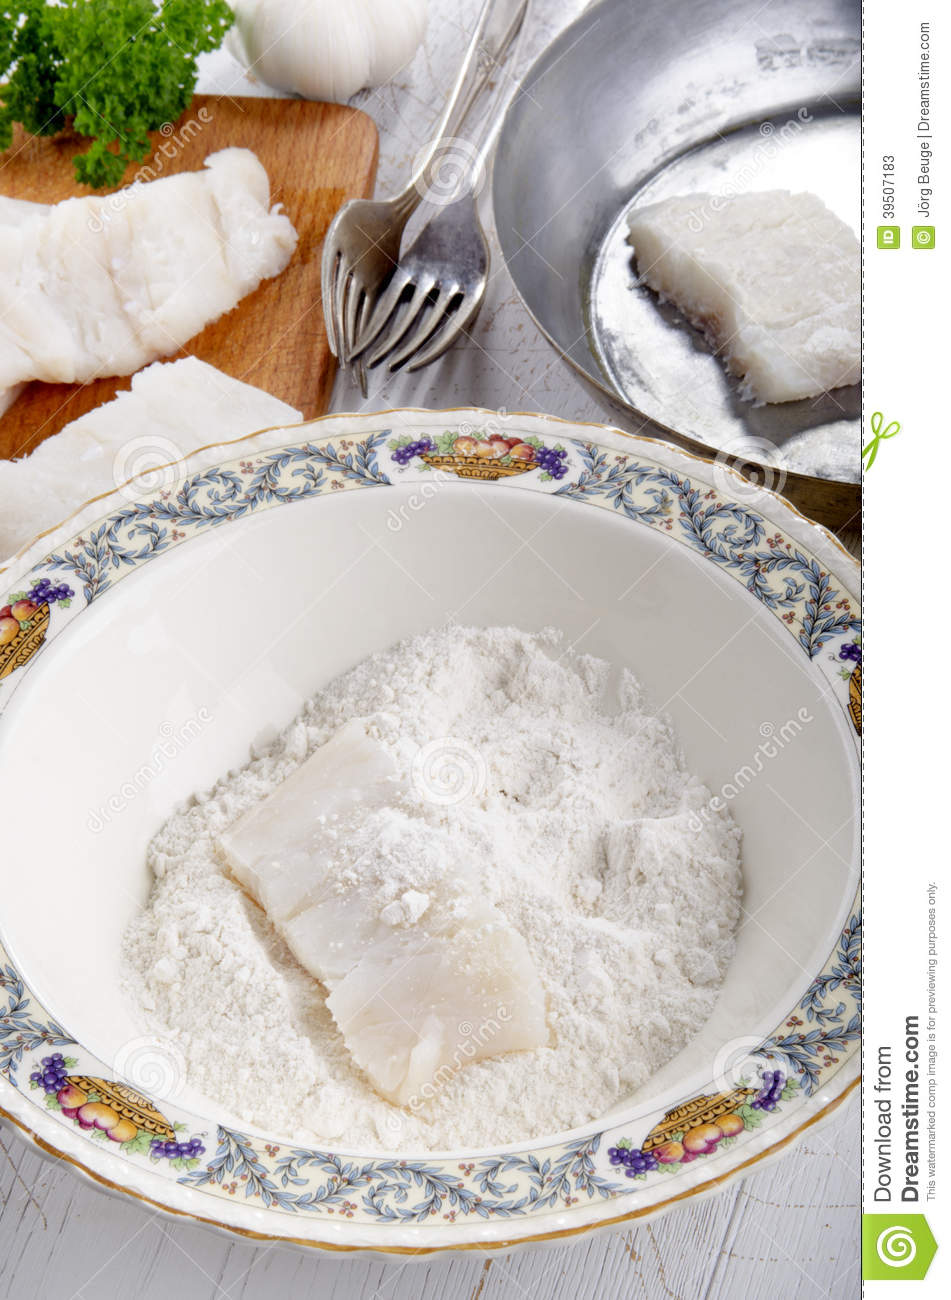 Cod filet in flour placed